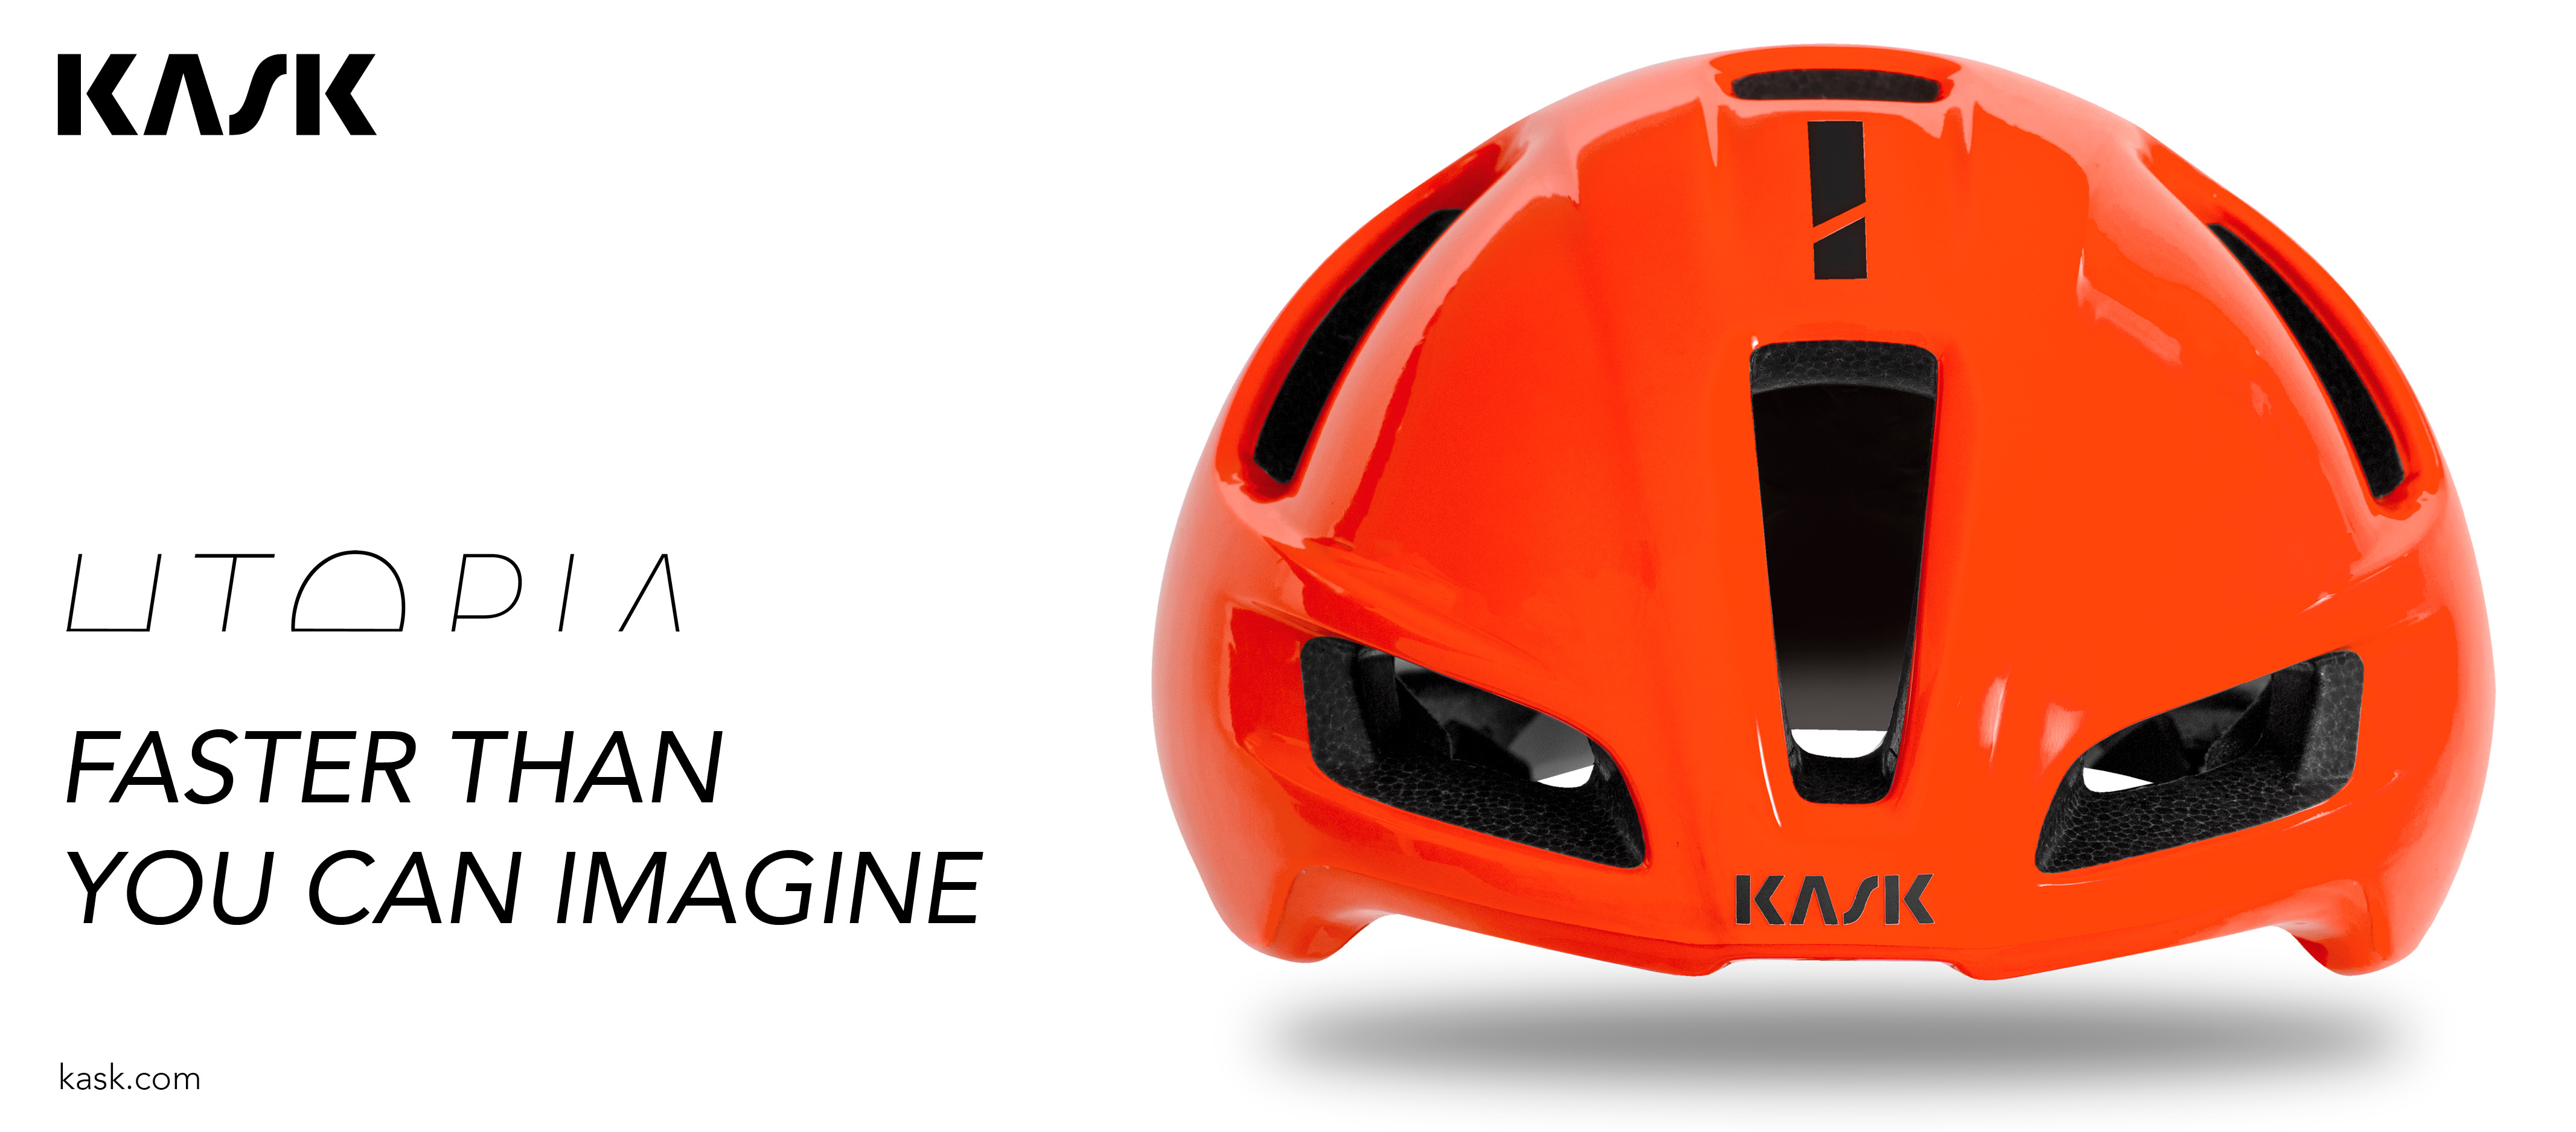 KASK – Official Partner of Strade Bianche